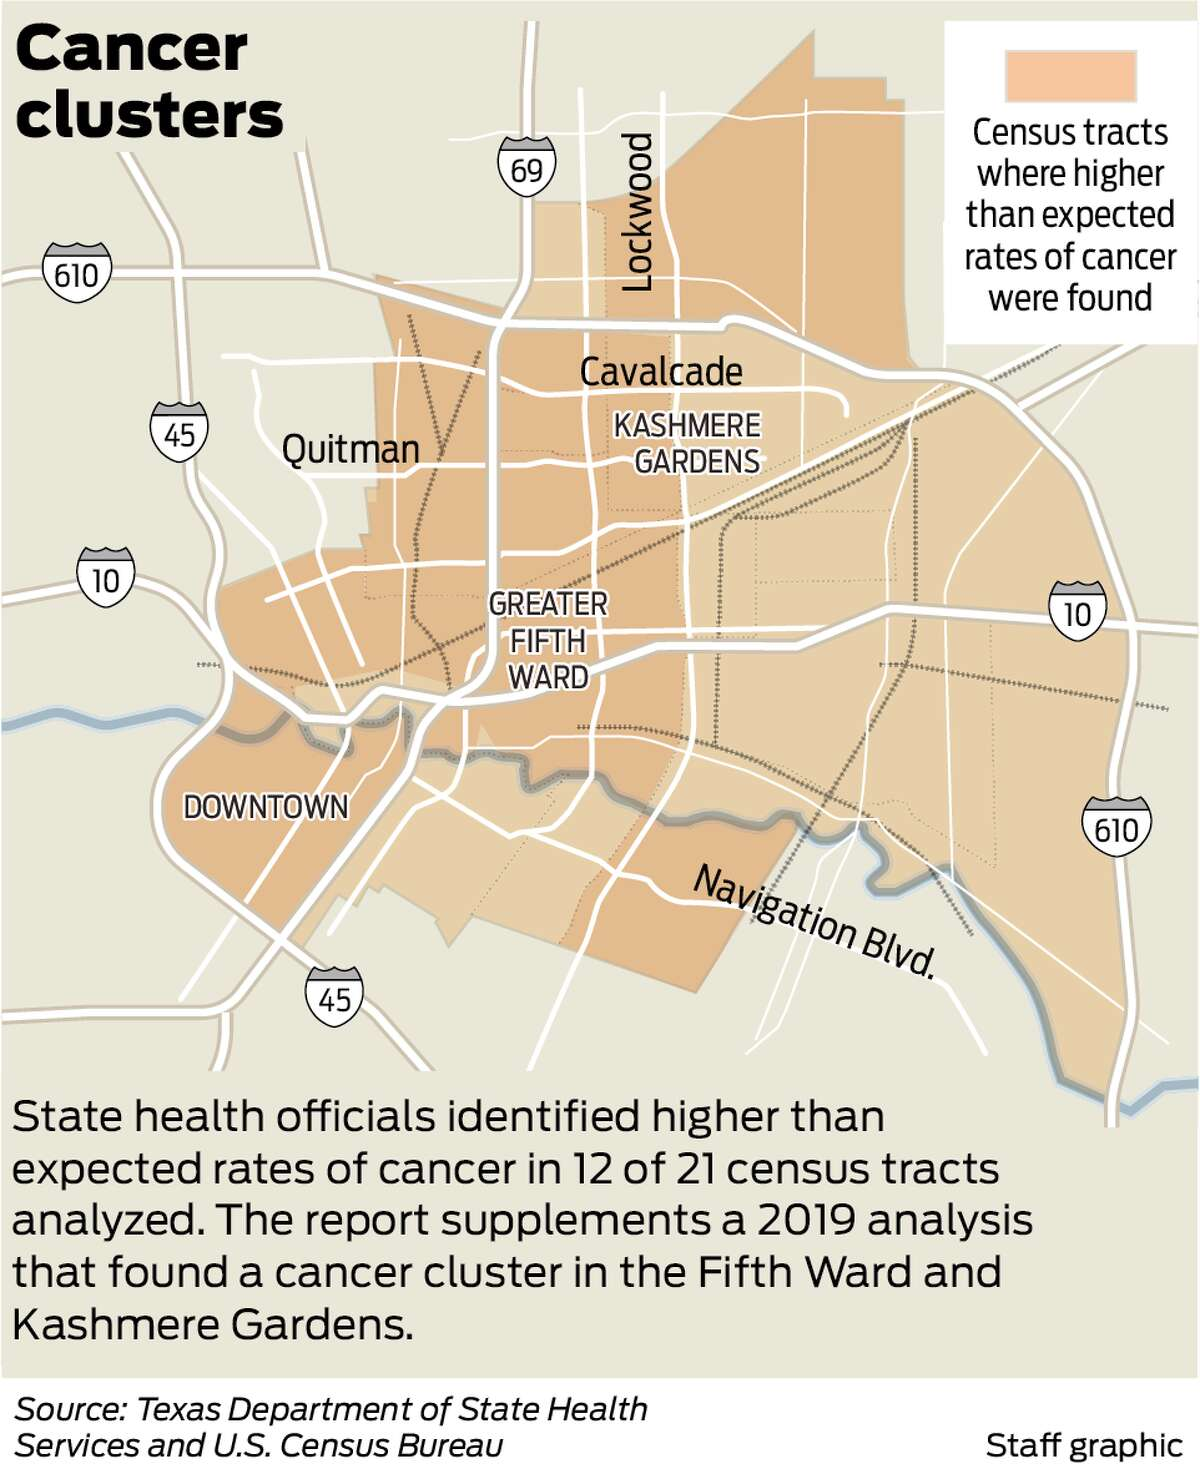 State health officials identified higher-than-expected rates of cancer in 12 or 21 census tracts analyzed in northeast Houston.